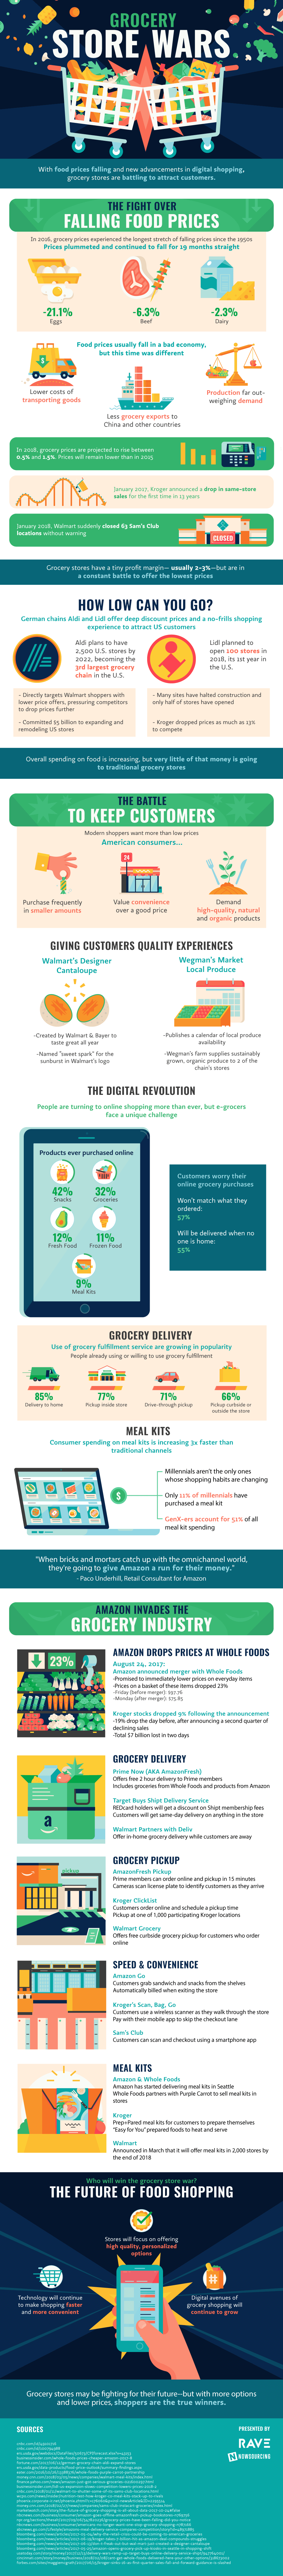 Winning The Grocery Store Wars [Infographic] 1